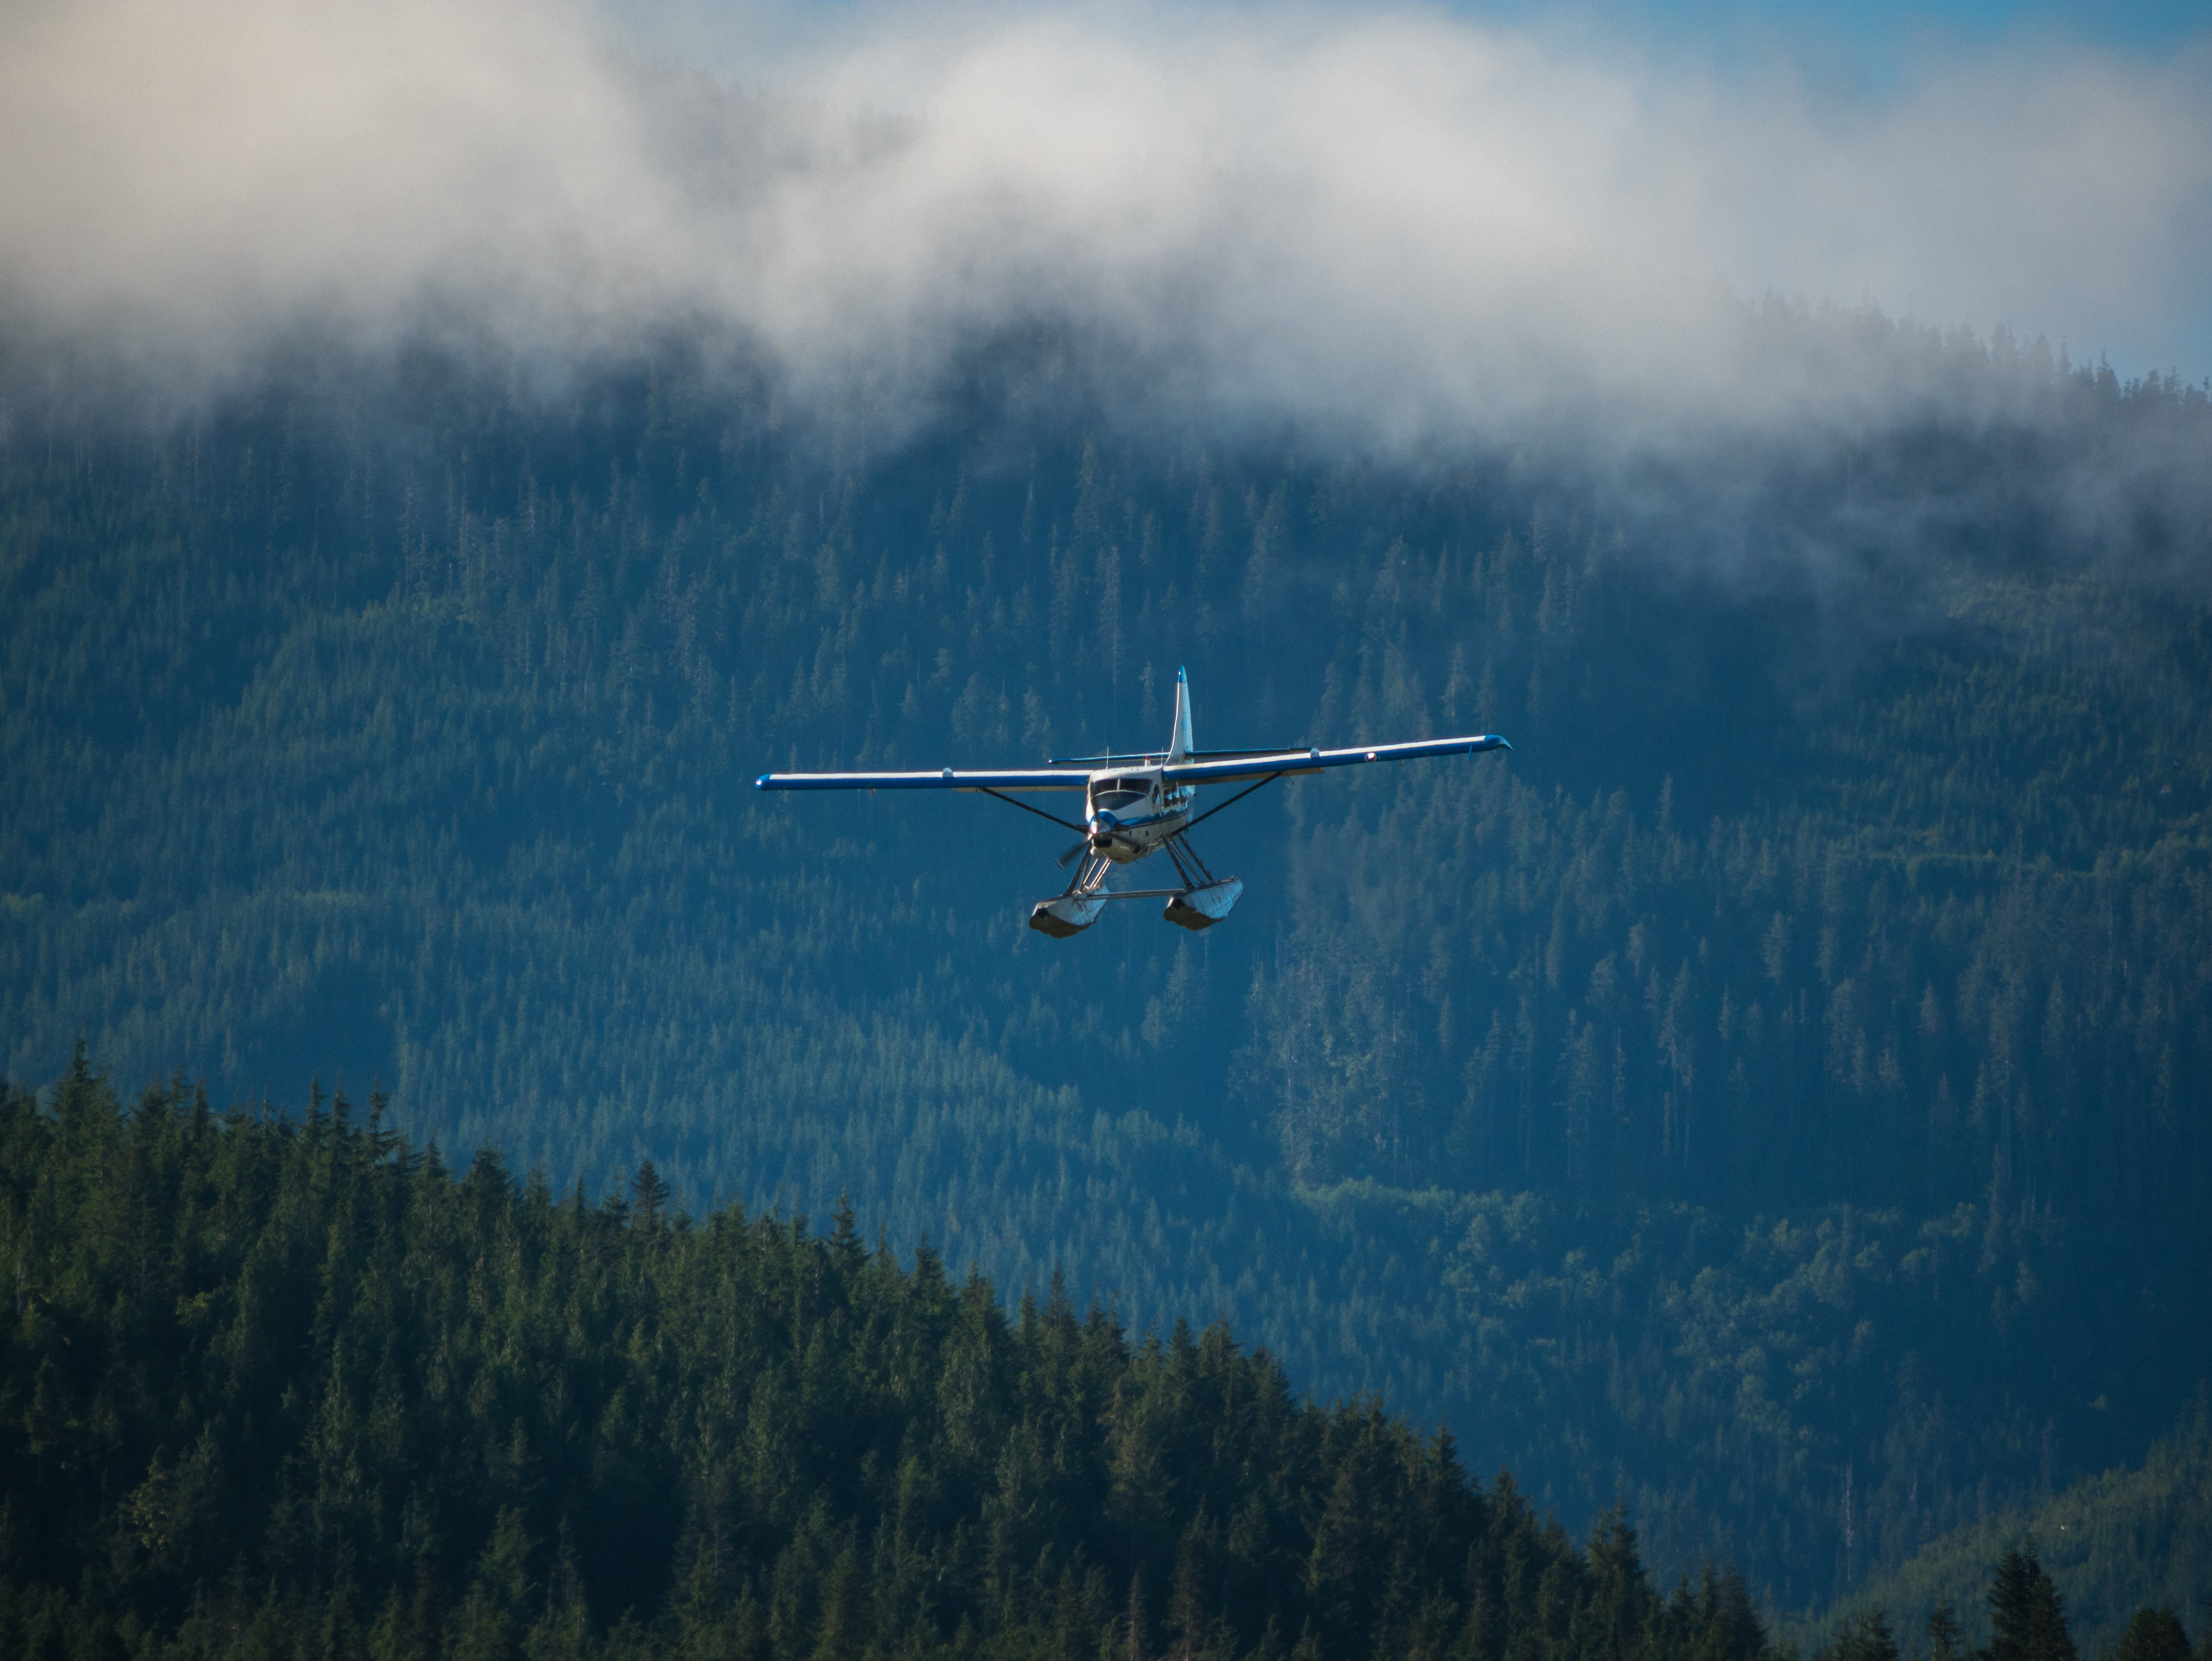 airplane above mountain covered in trees